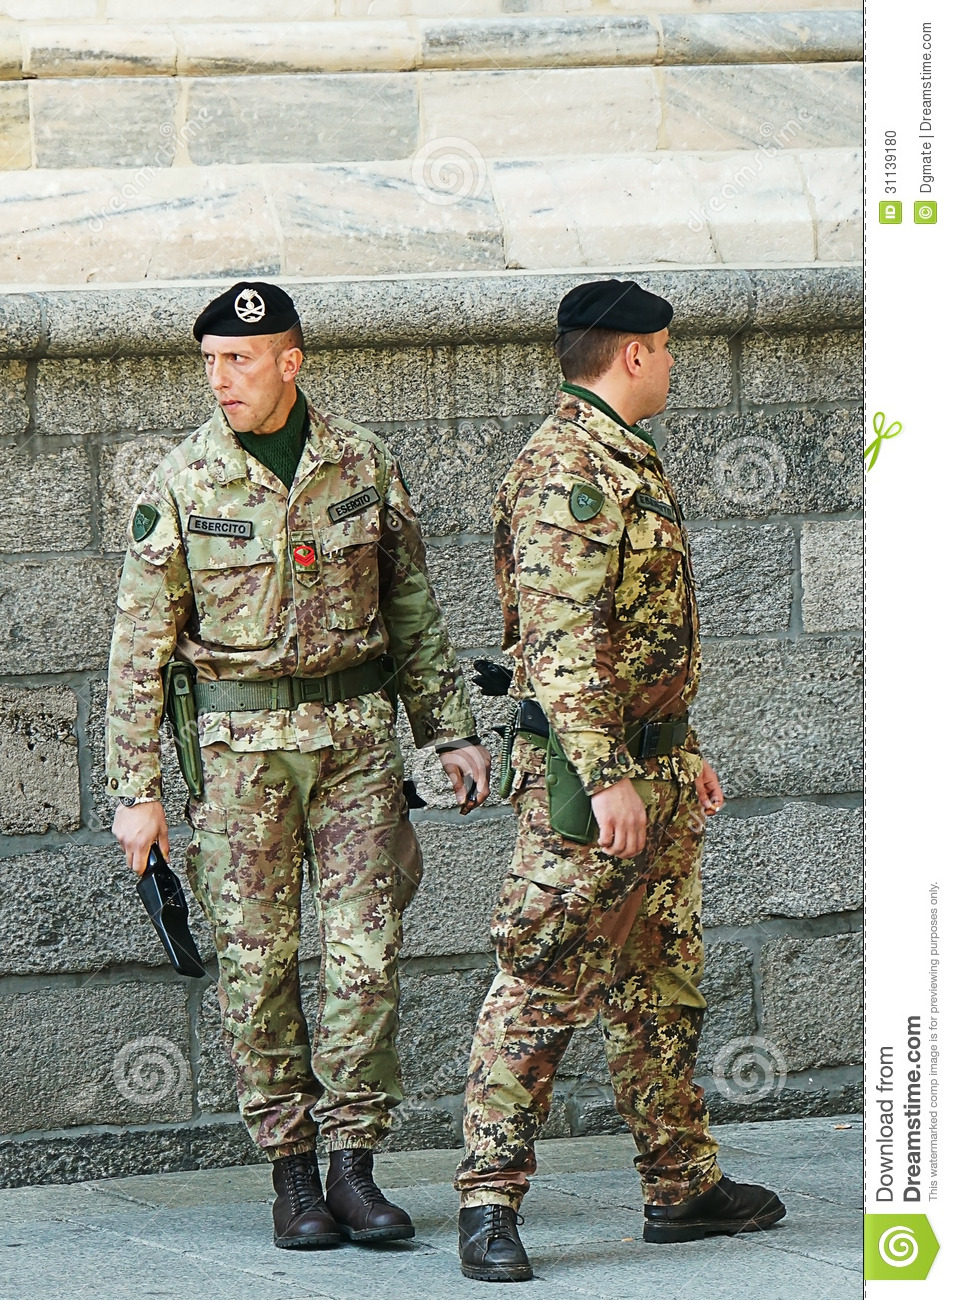 Personal Security Uniforms